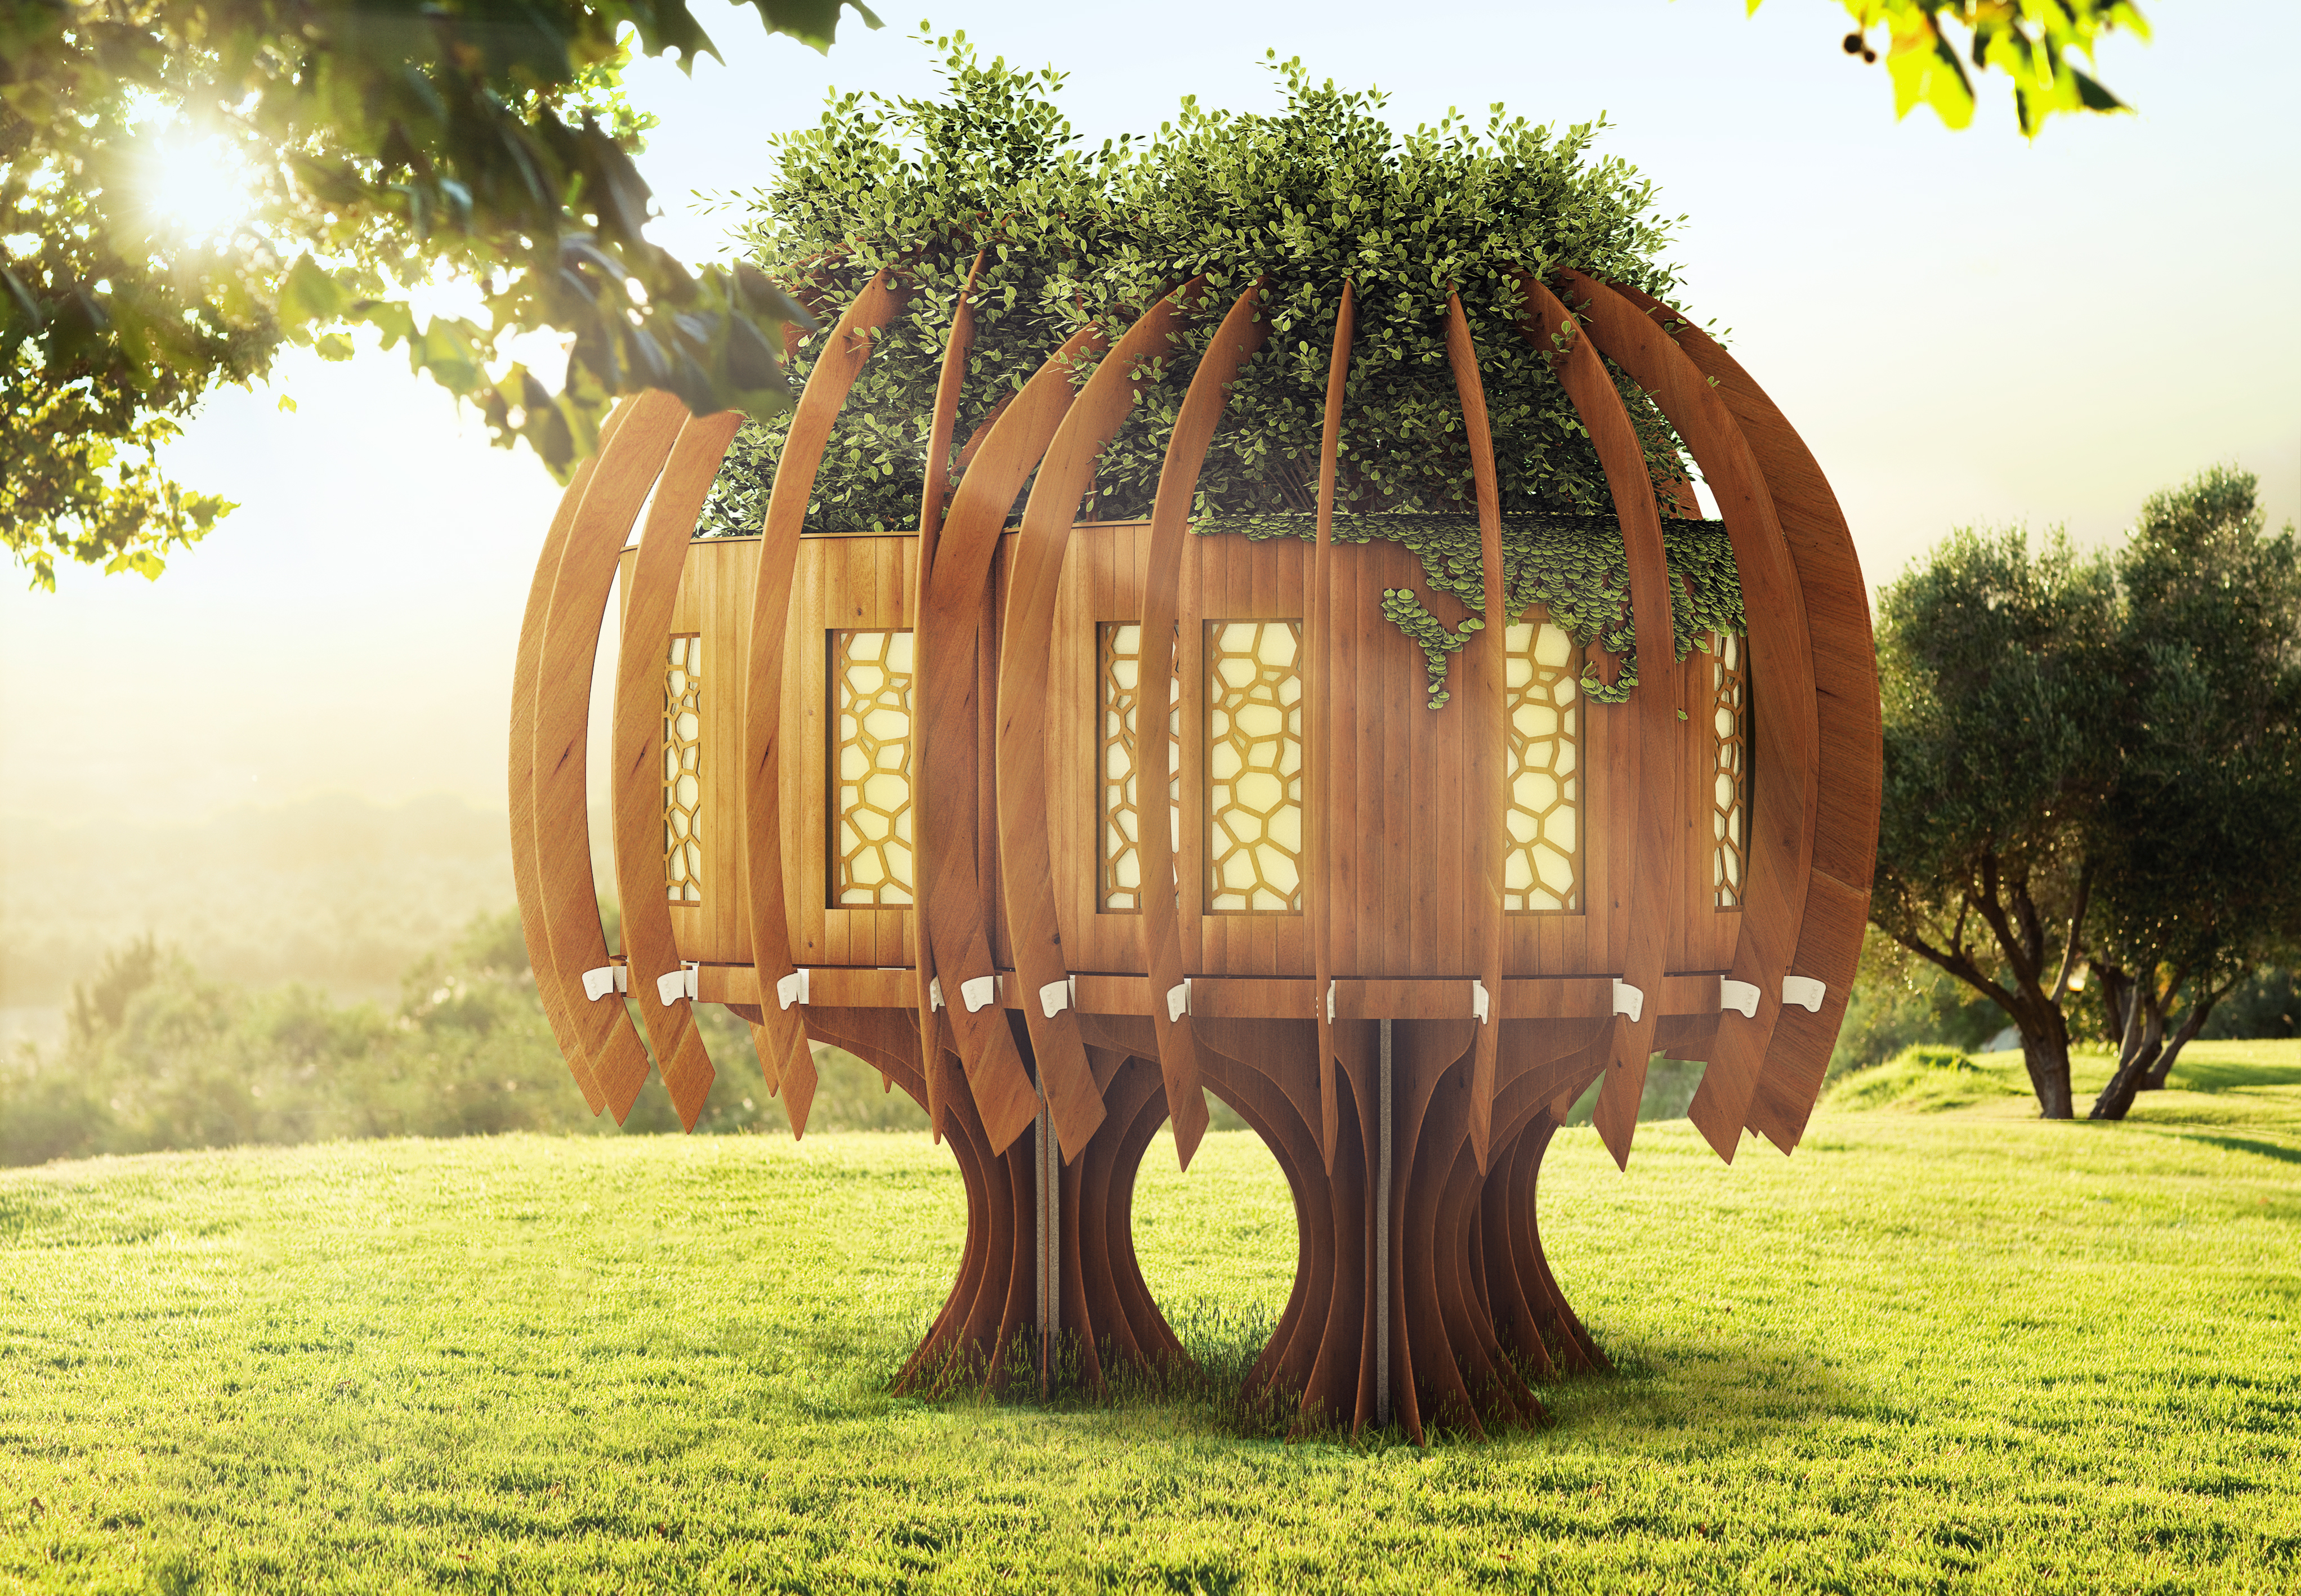 Quiet Mark Treehouse Finds a New Home at Kew Gardens